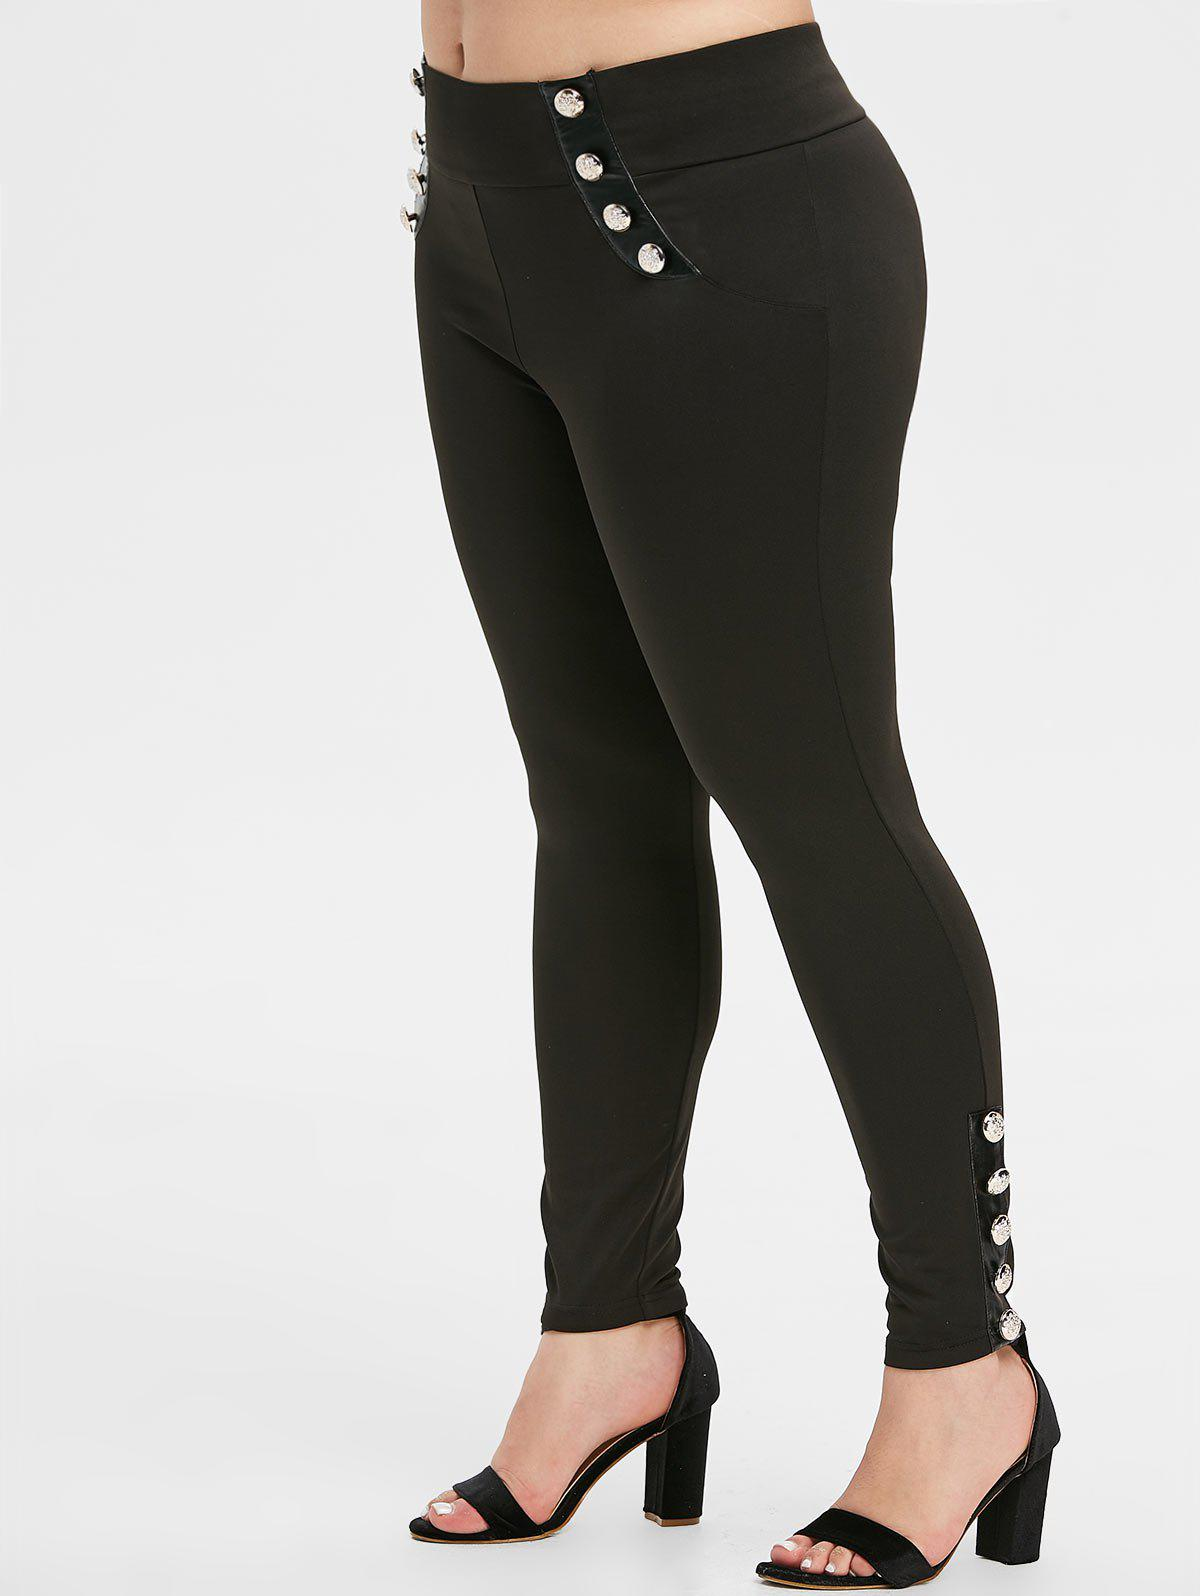 Plus Size Buttons High Waist Skinny Pants - MIRROR BLACK L